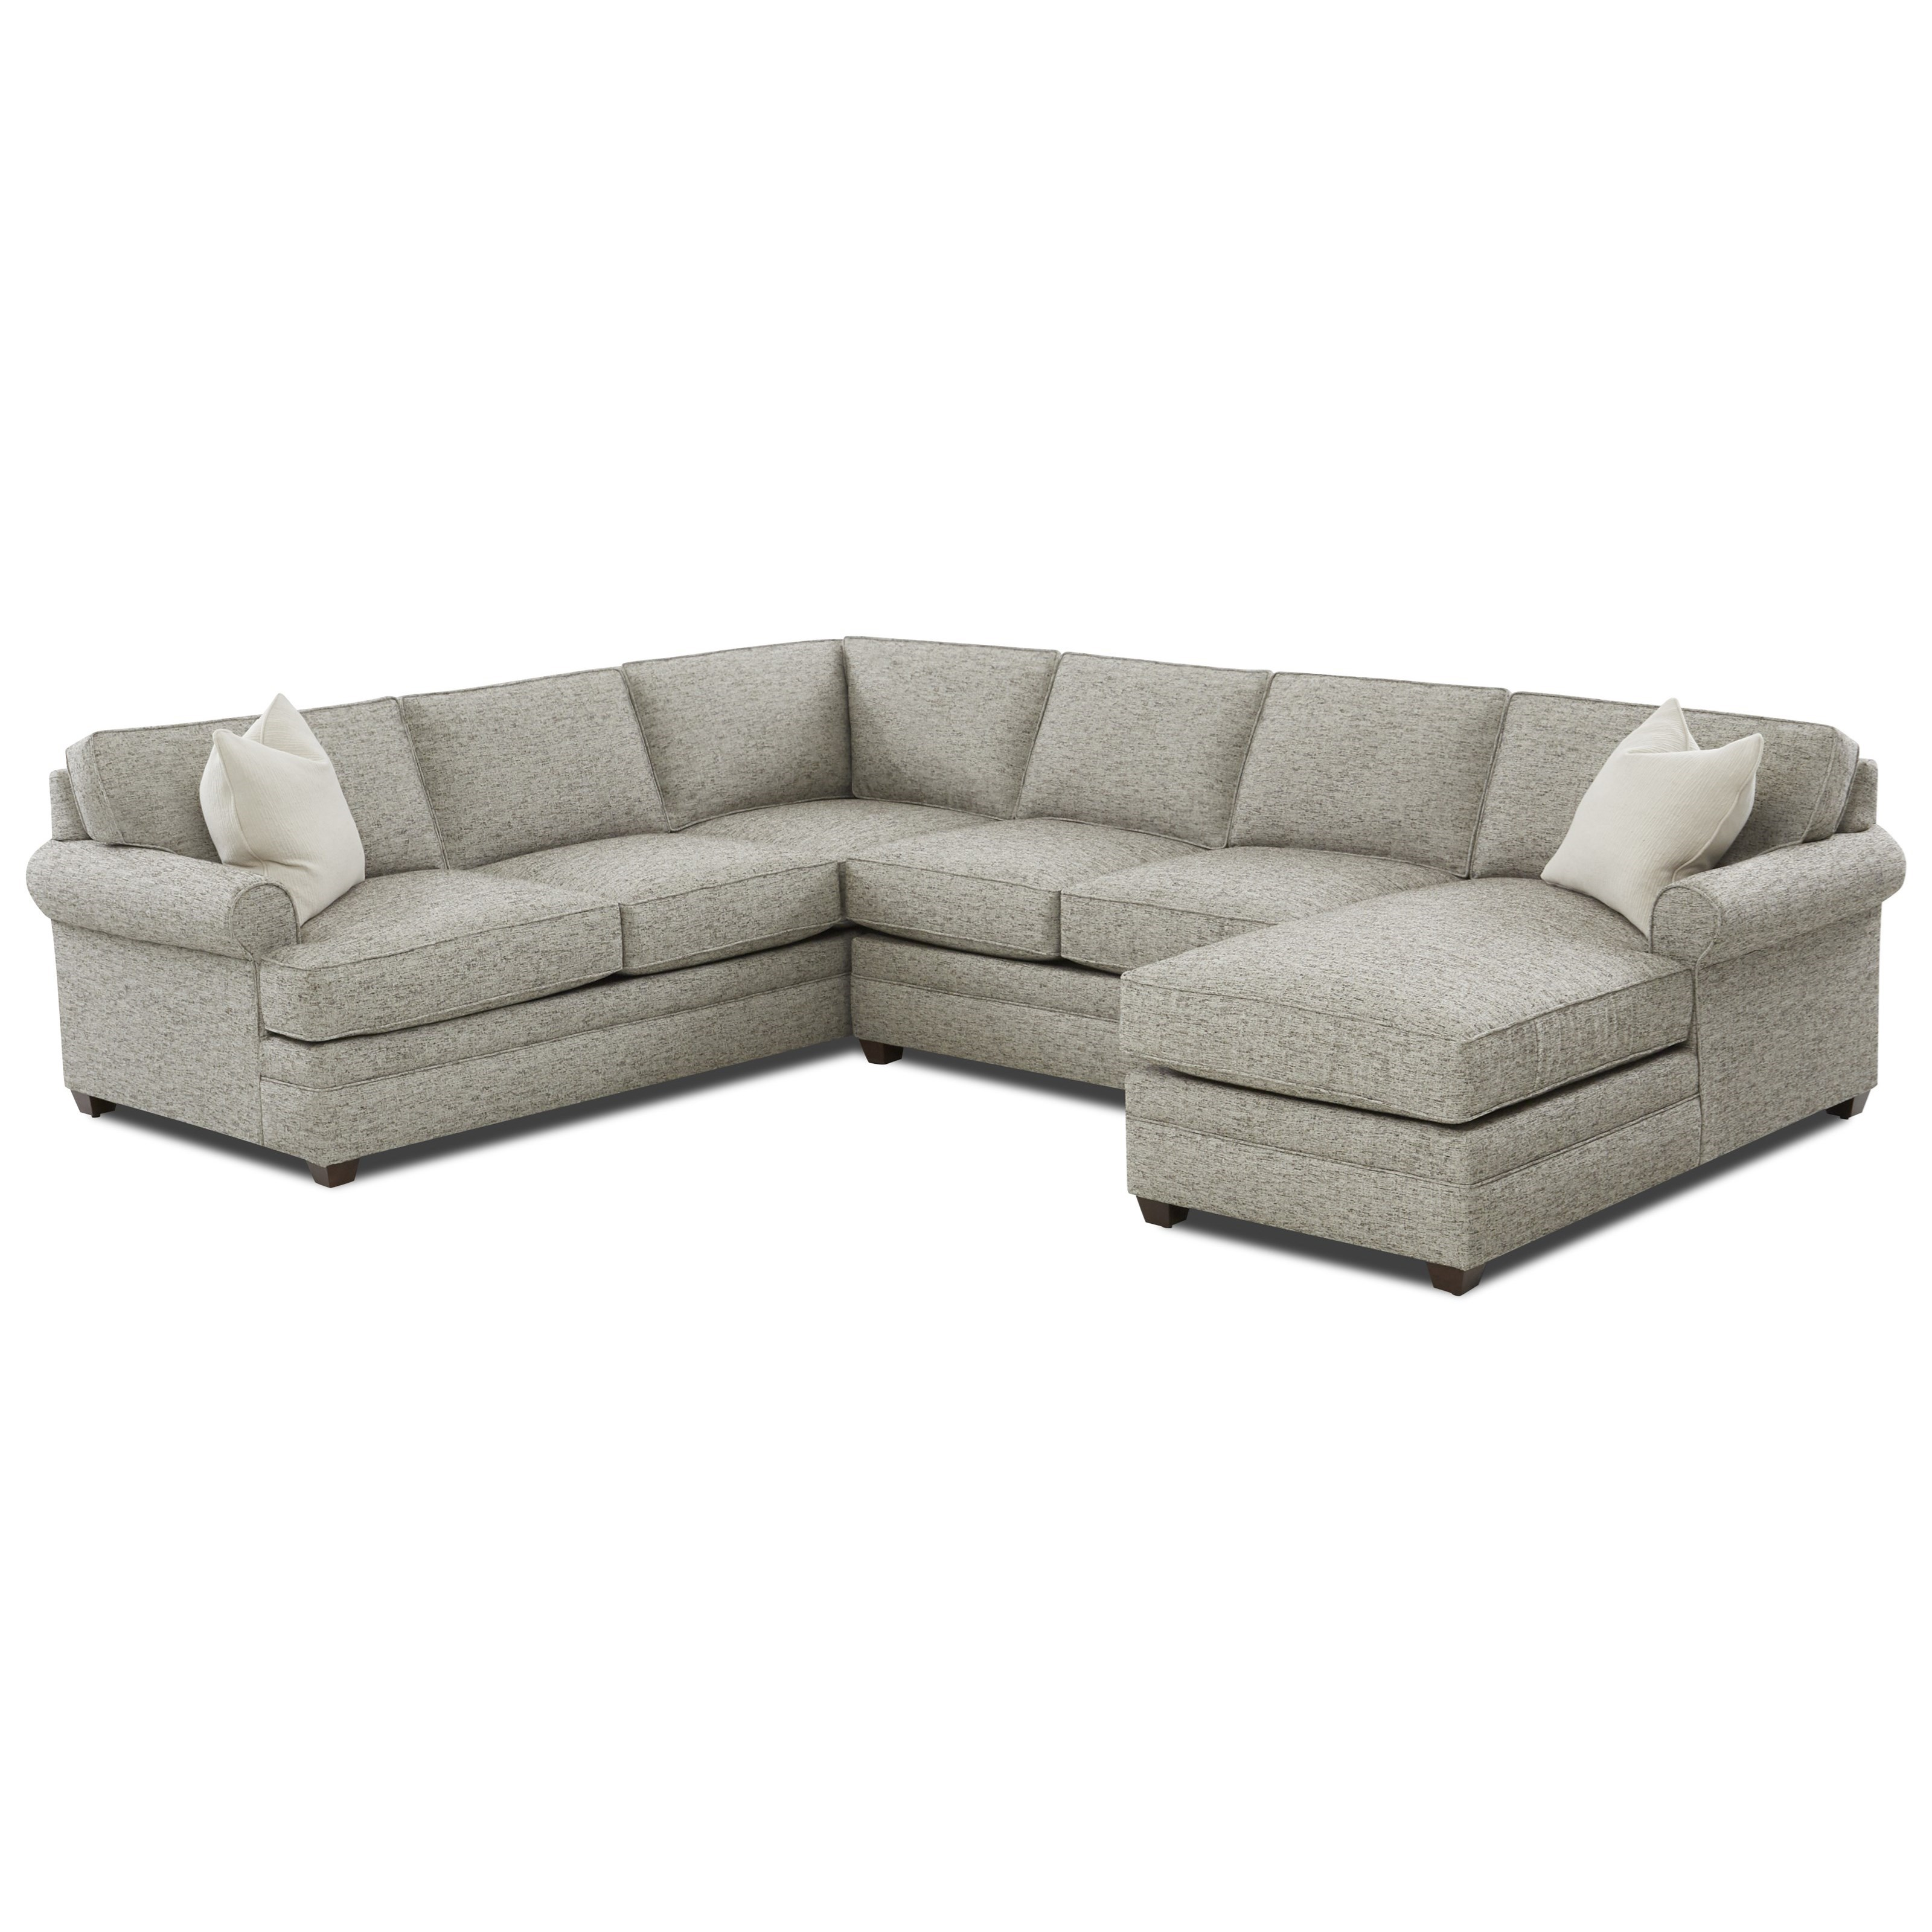 Living Your Way 3-Piece Sectional by Klaussner at Northeast Factory Direct